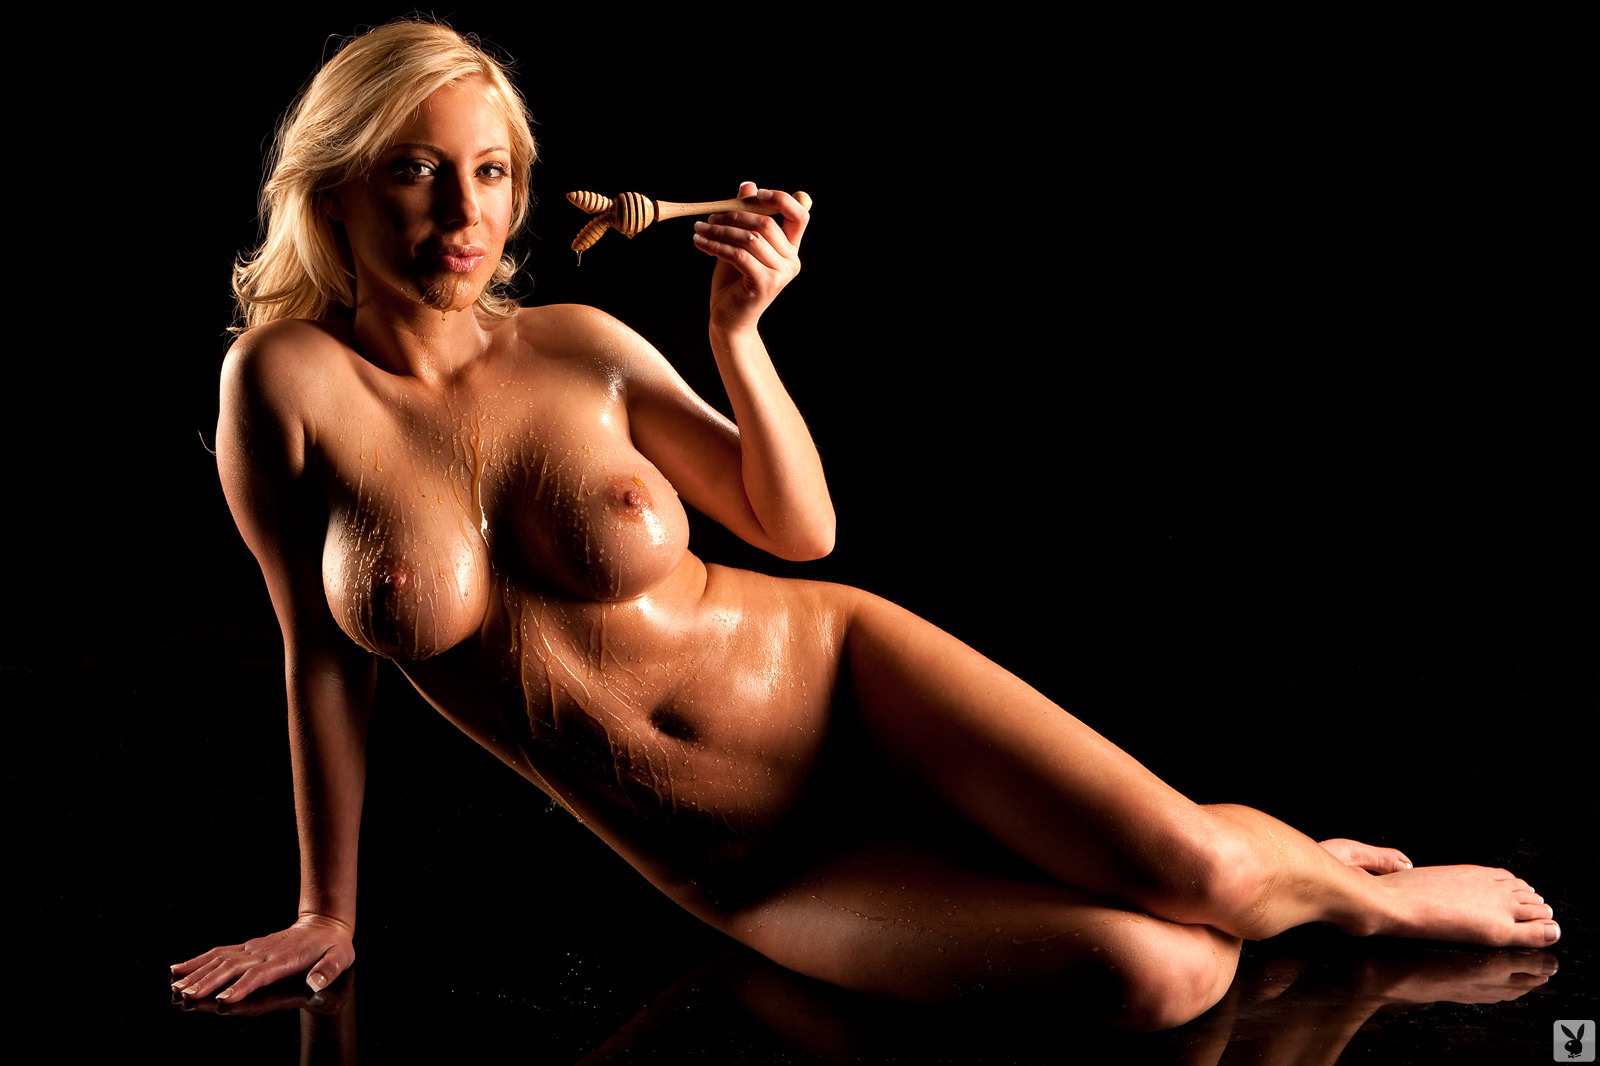 Honney Bunny Nude Pictures